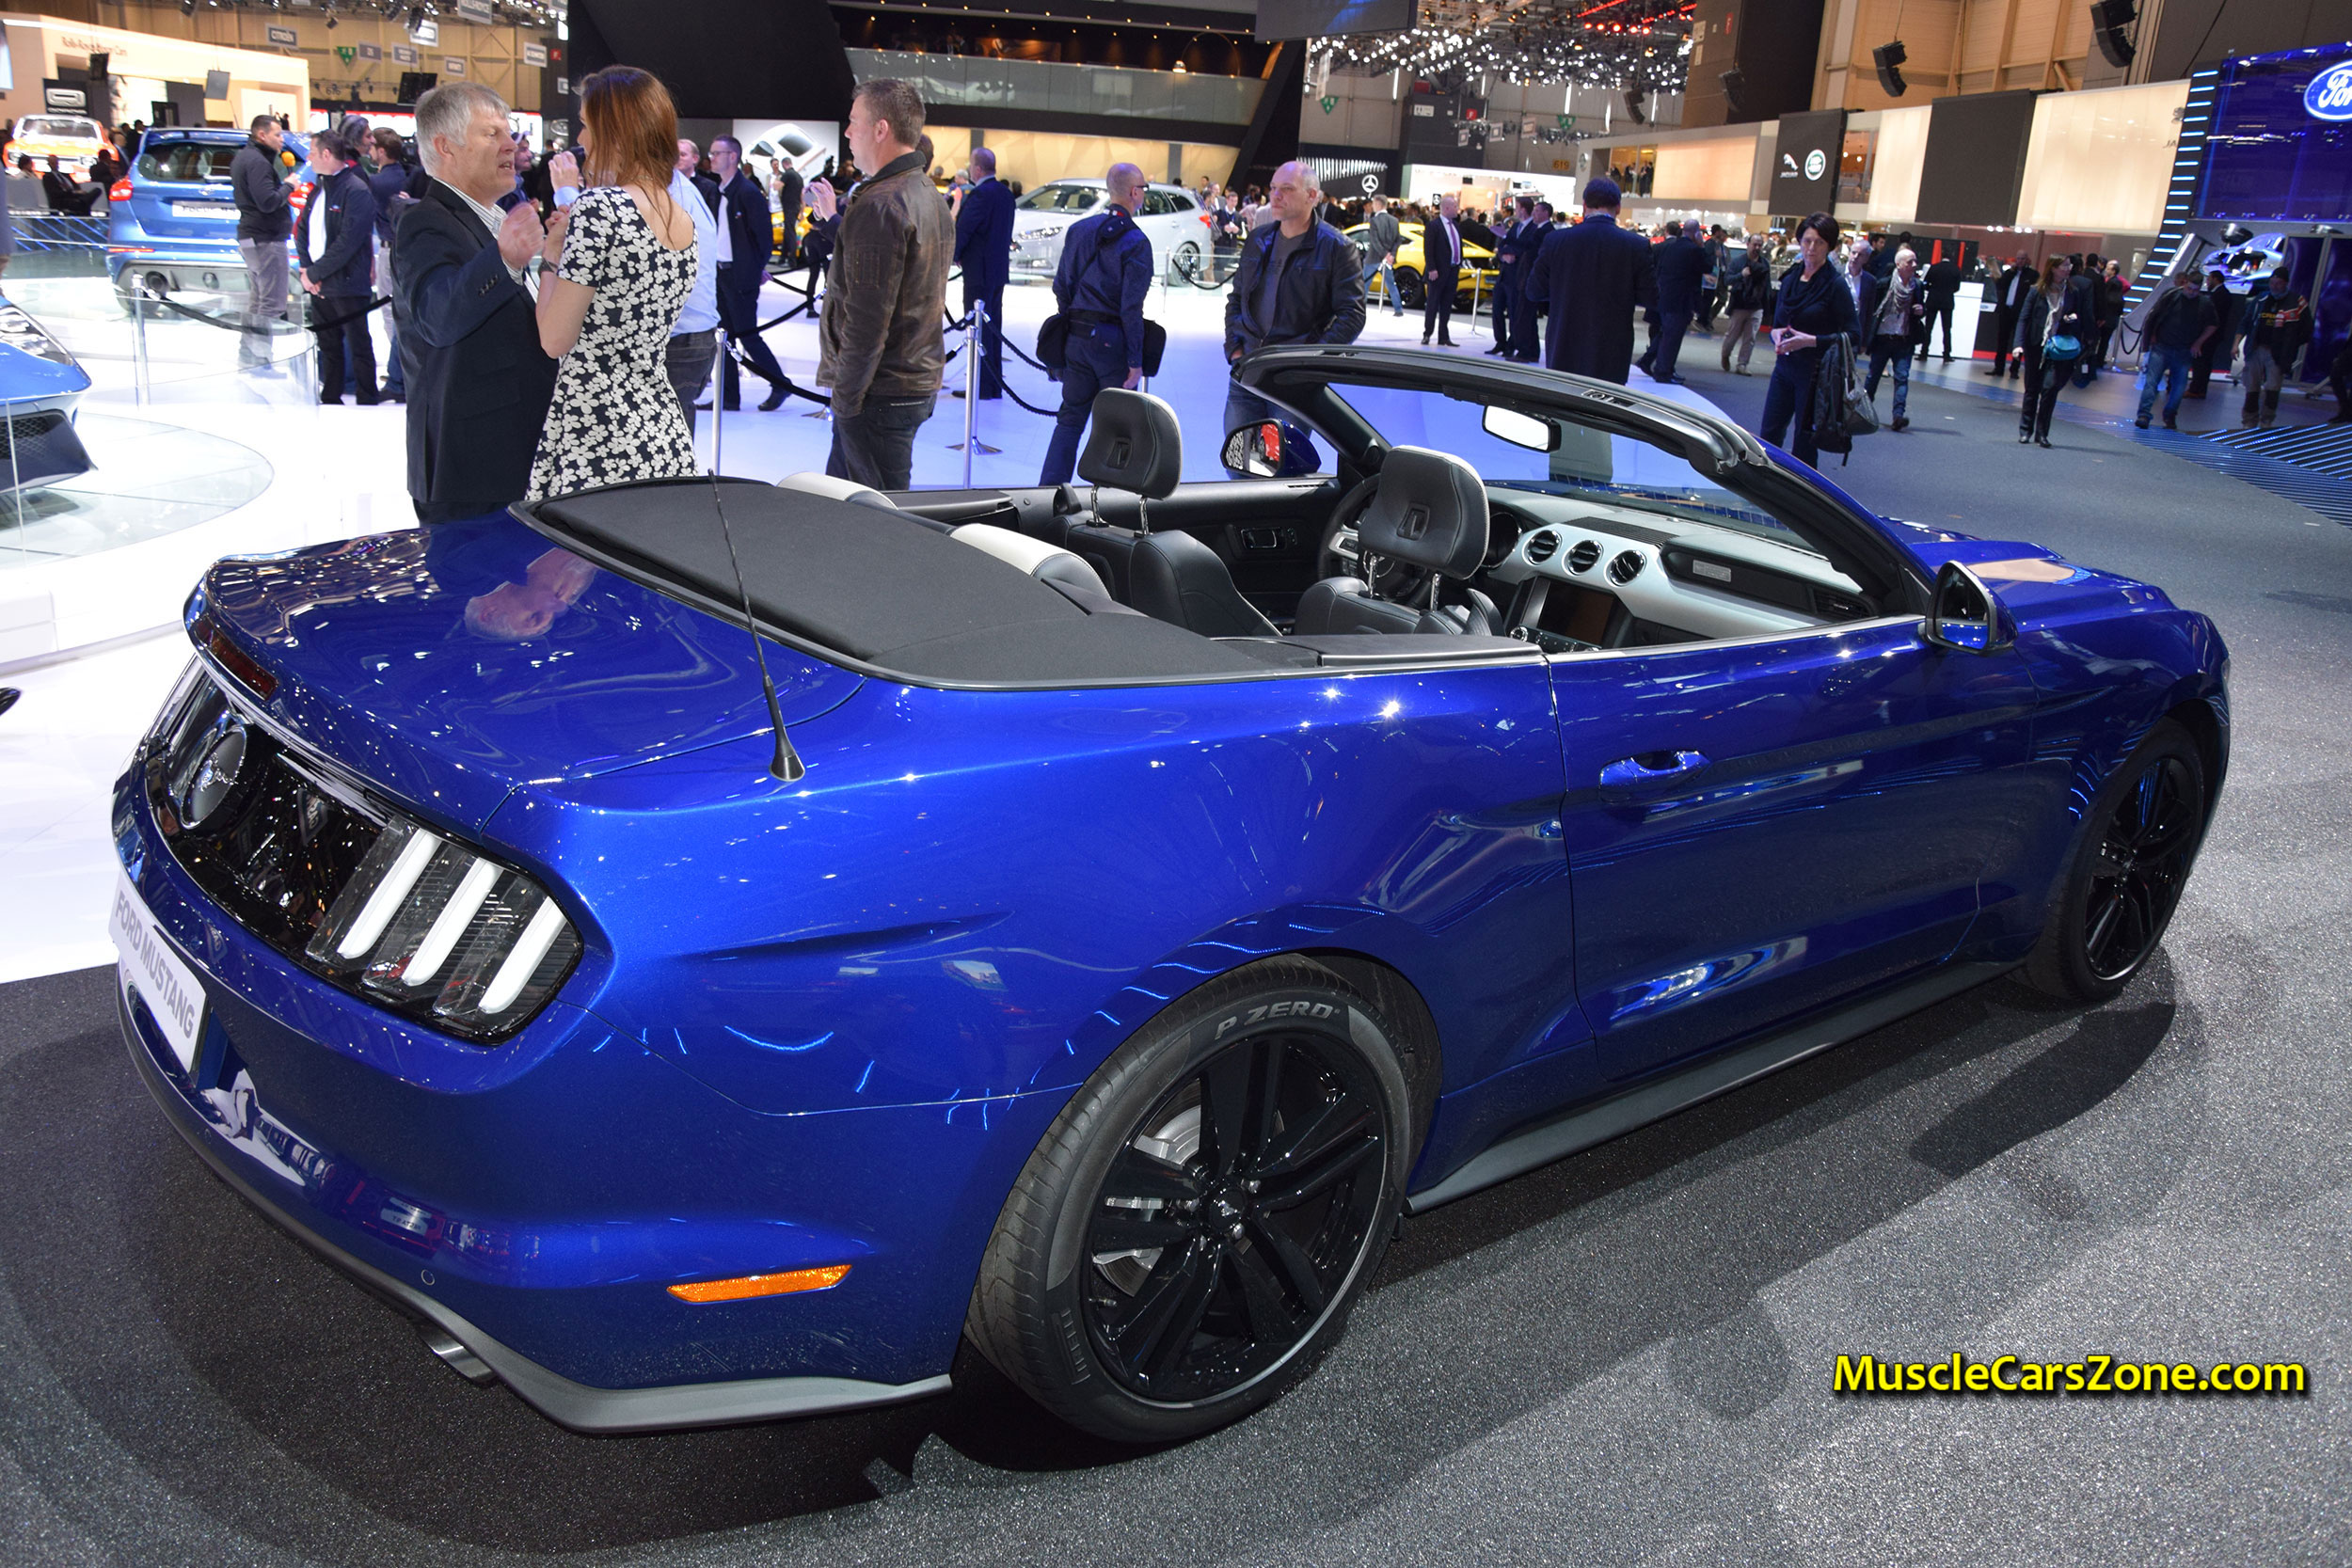 Which Cars Have DEBUTED @ 2015 GENEVA SHOW (5-15 MARCH